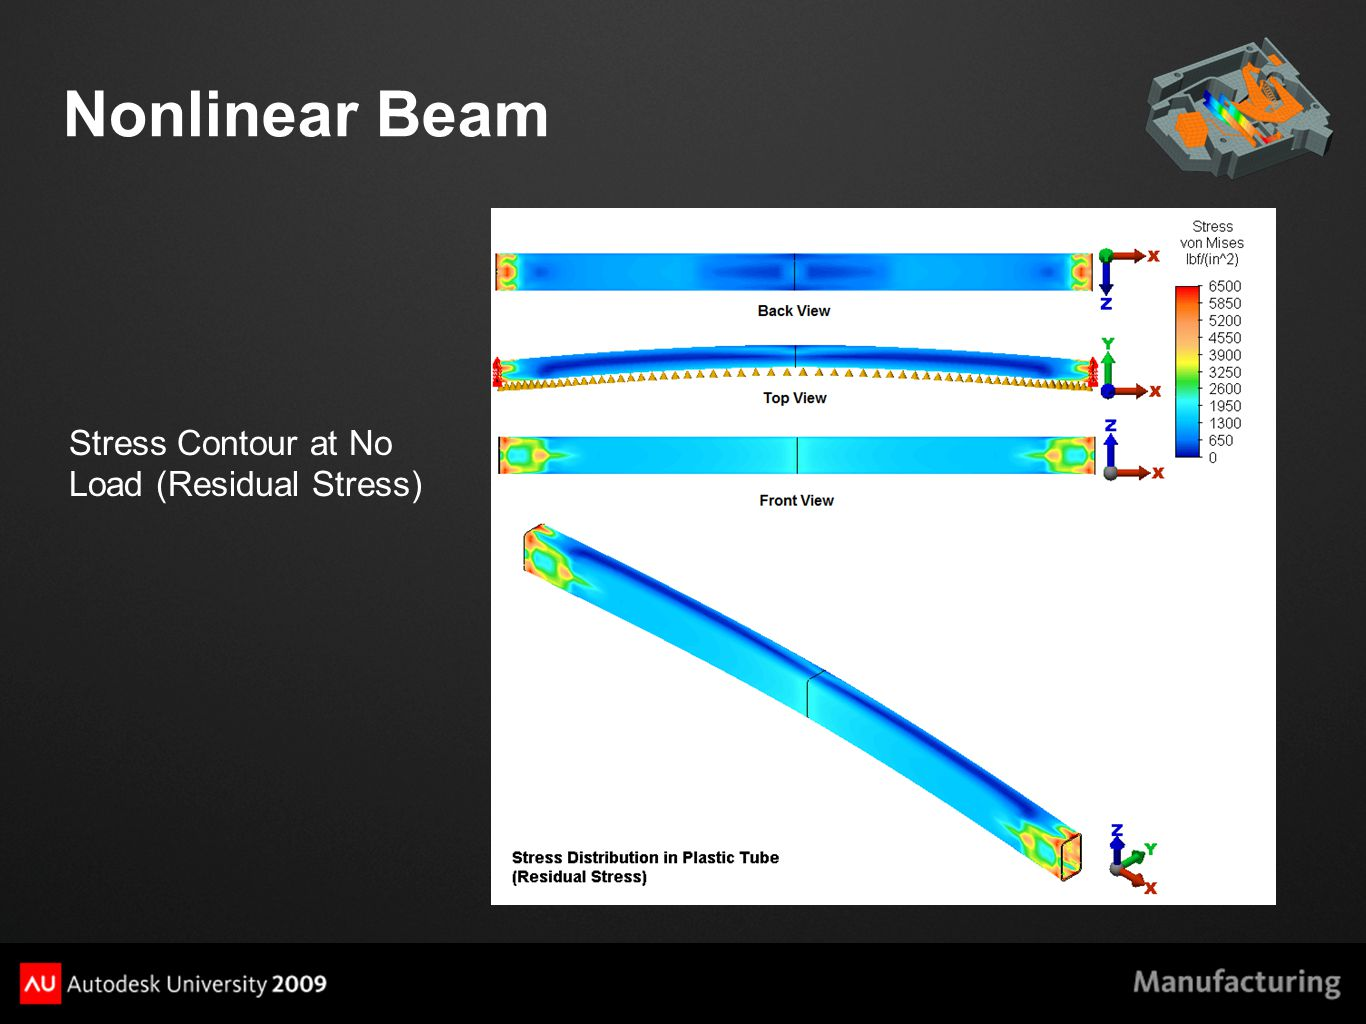 Nonlinear Beam Stress Contour at No Load (Residual Stress)